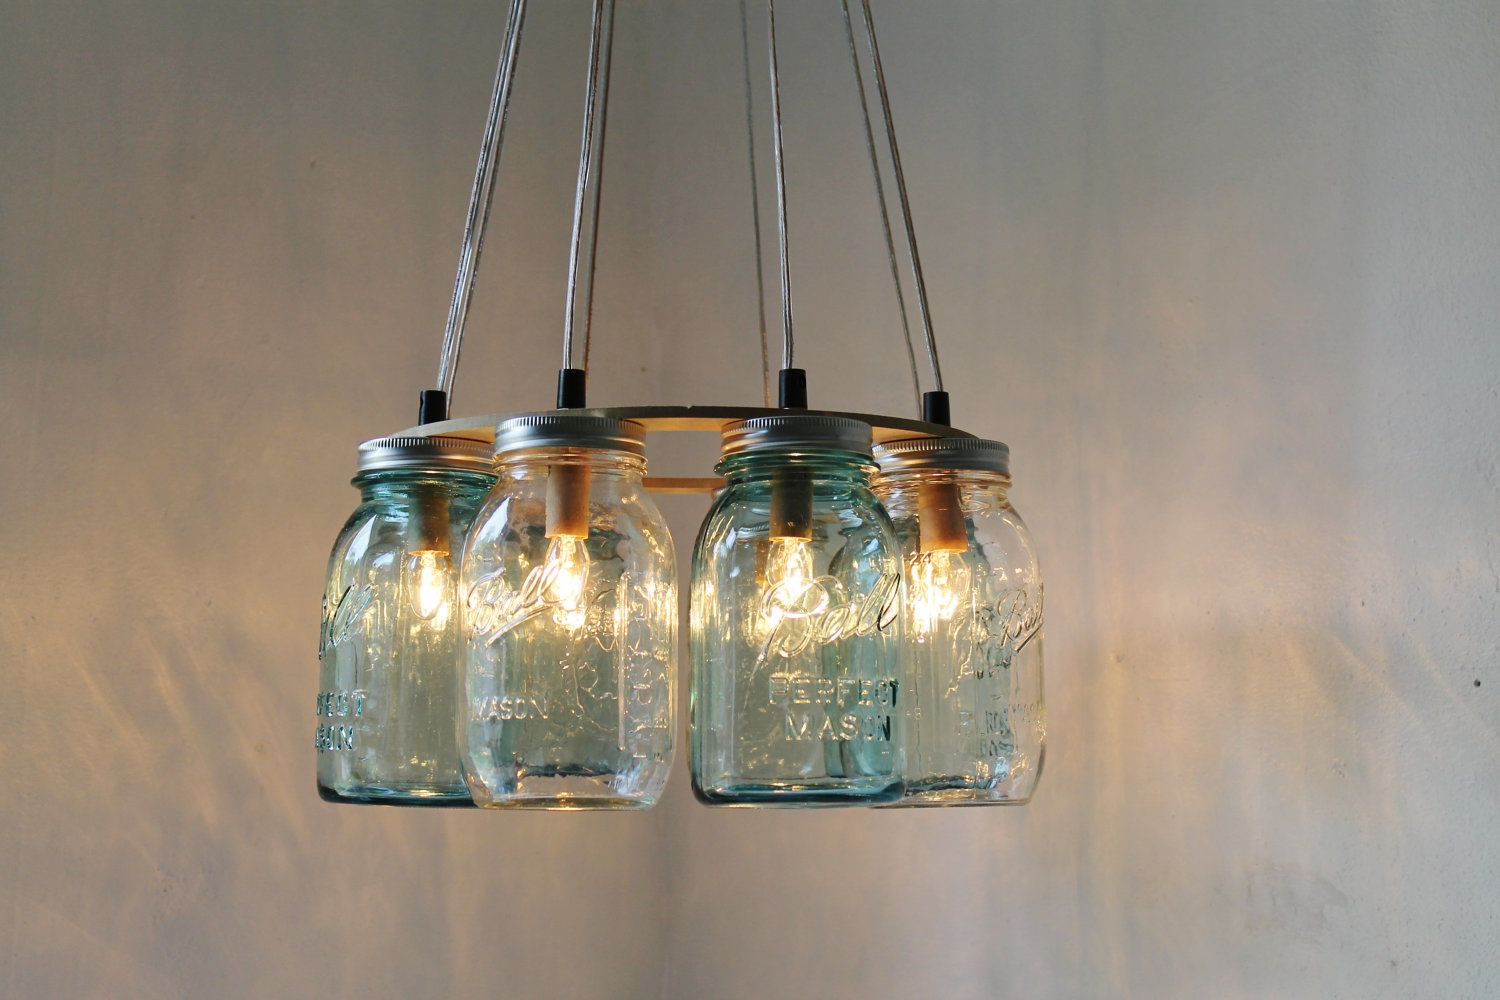 Modern country mason jar chandelier upcycled hanging for Country lighting fixtures for home